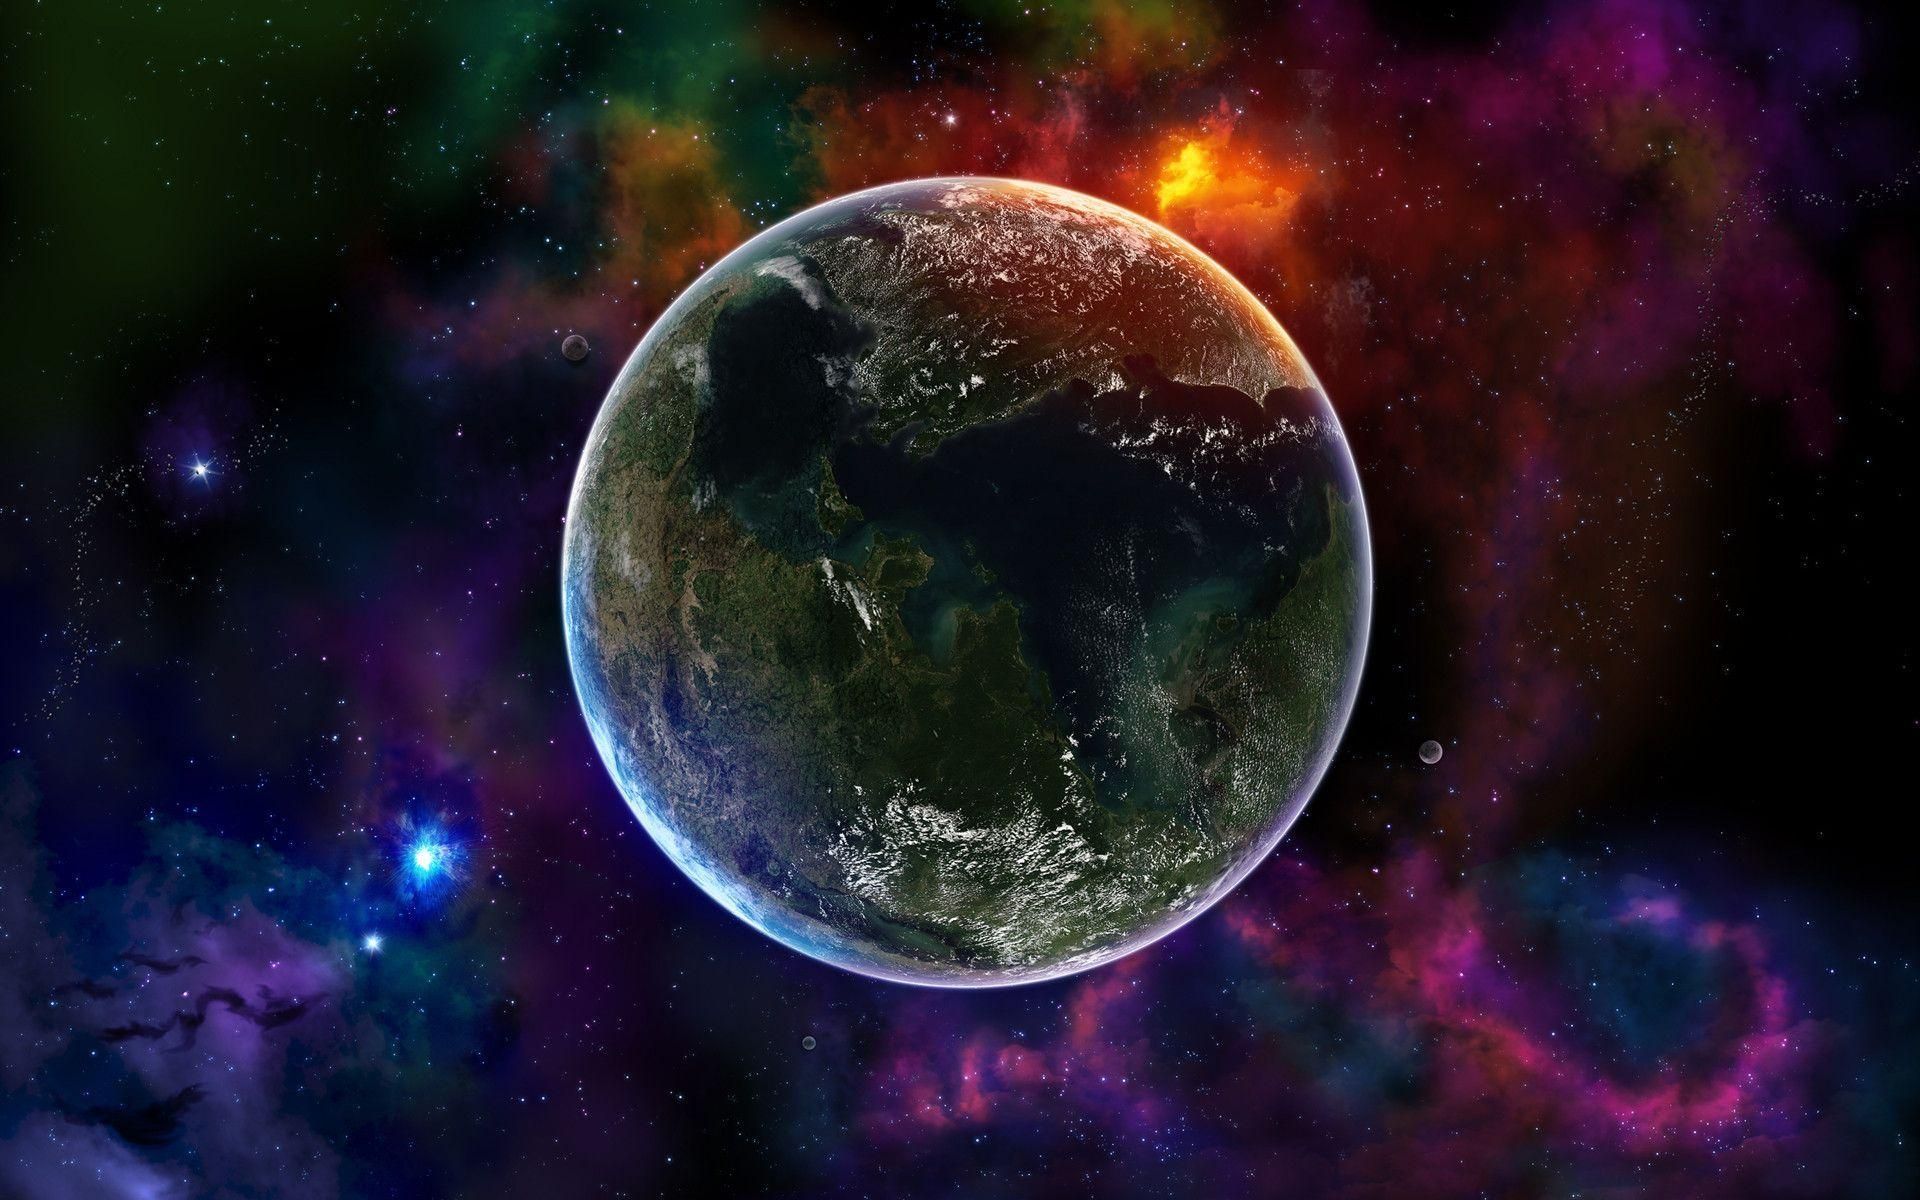 3d wallpaper colorful planets - photo #2